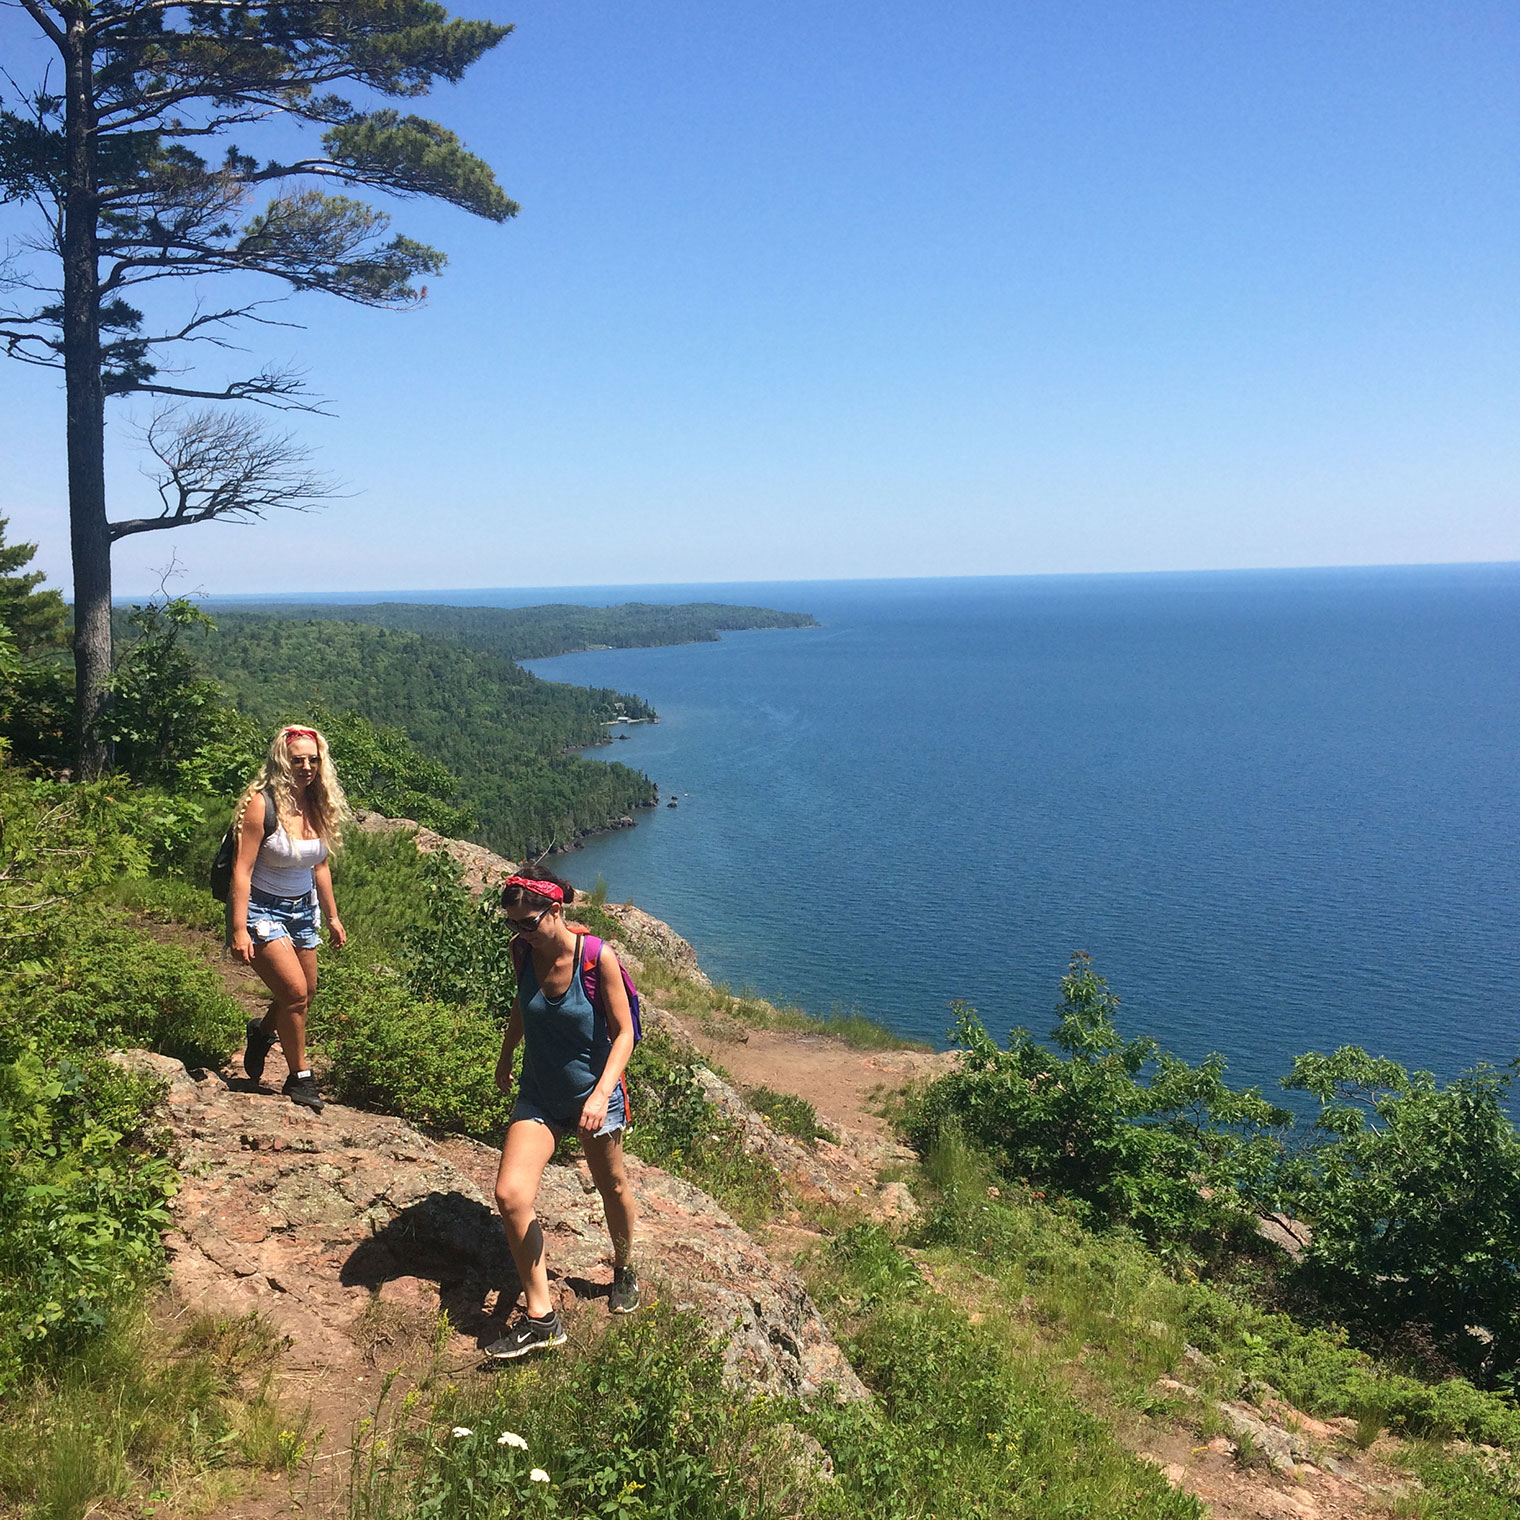 hiking trail overlooking lake superior